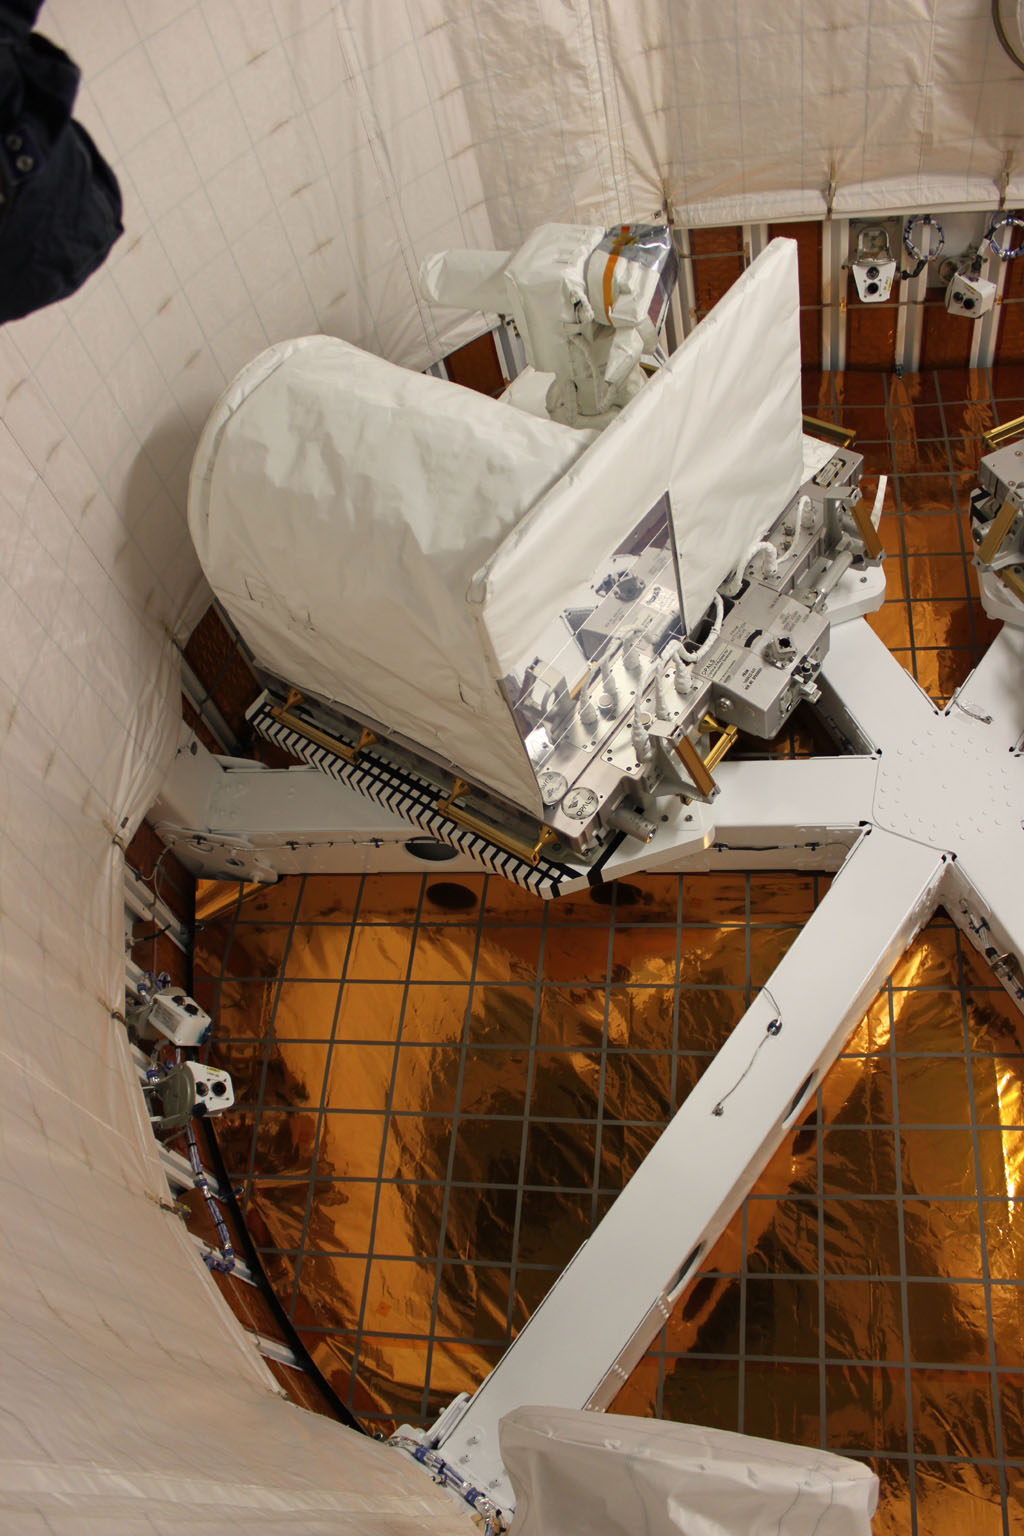 This photo shows the Optical PAyload for Lasercomm Science (OPALS) being installed in SpaceX's Dragon capsule prior to launching on April 18, 2014.